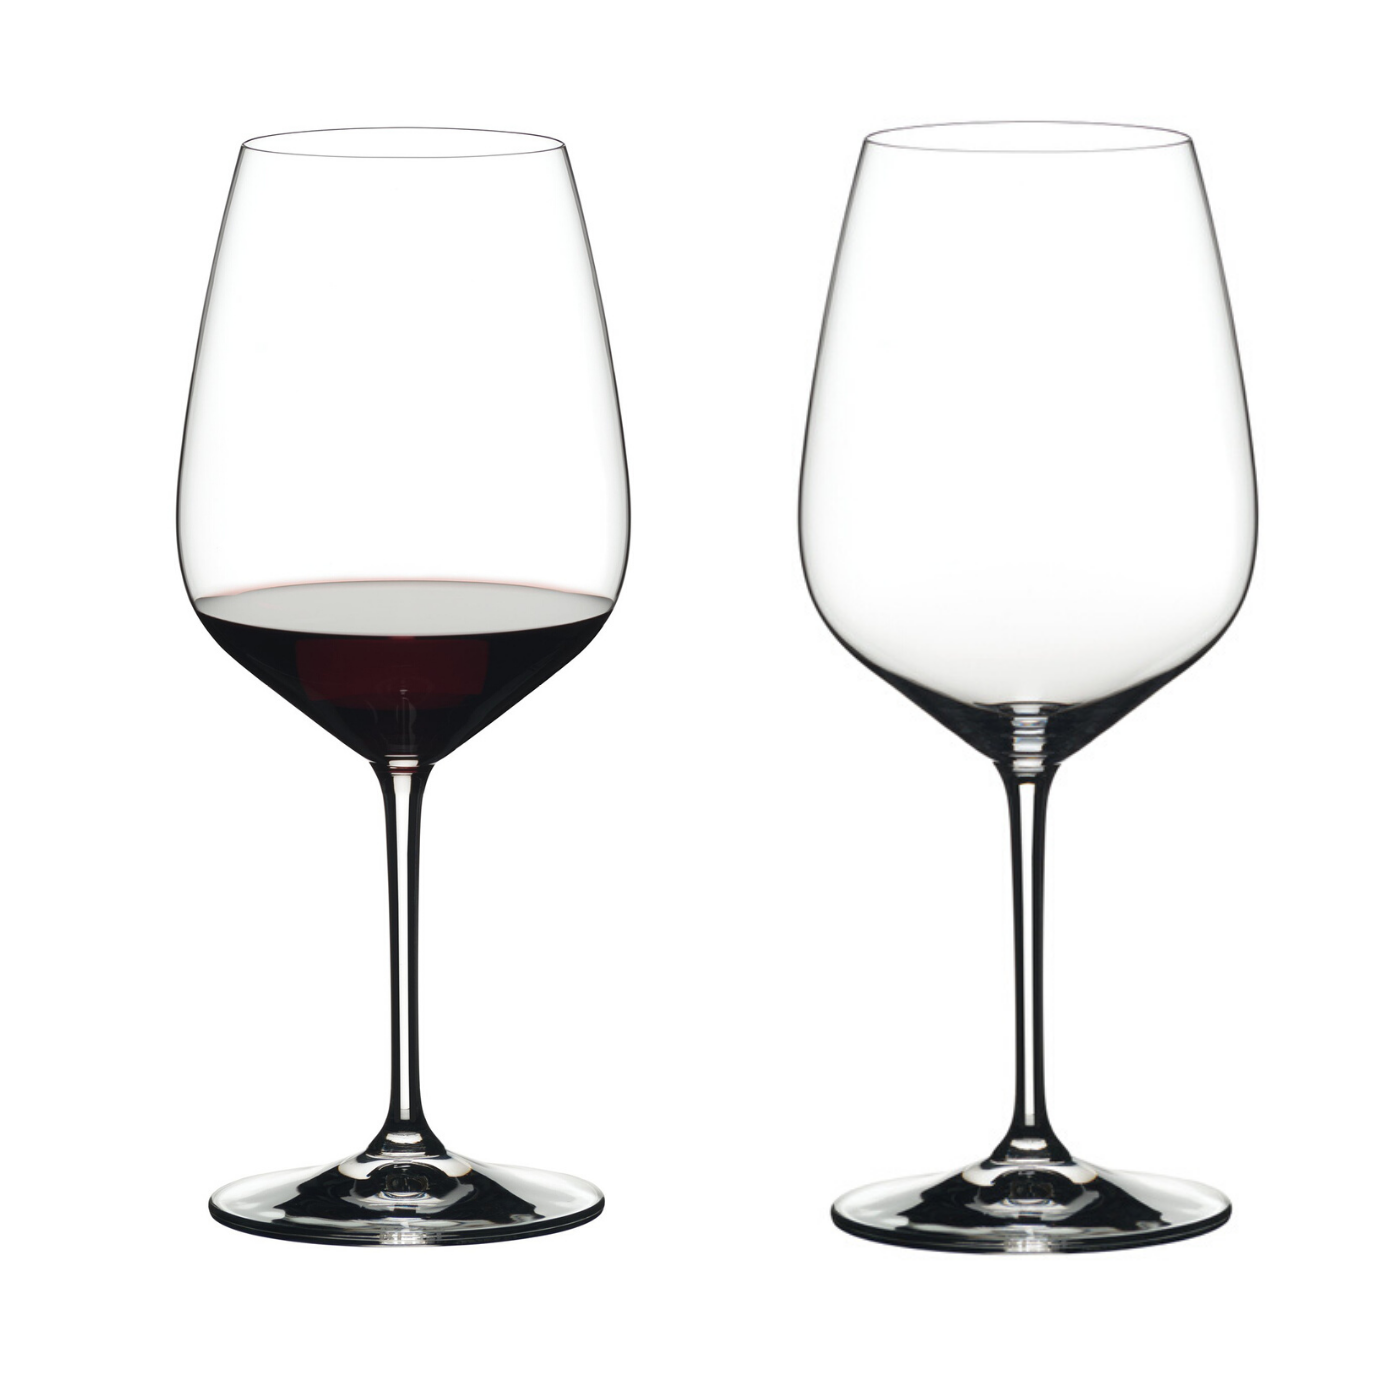 Riedel Extreme Cabernet Glasses (set of 2)